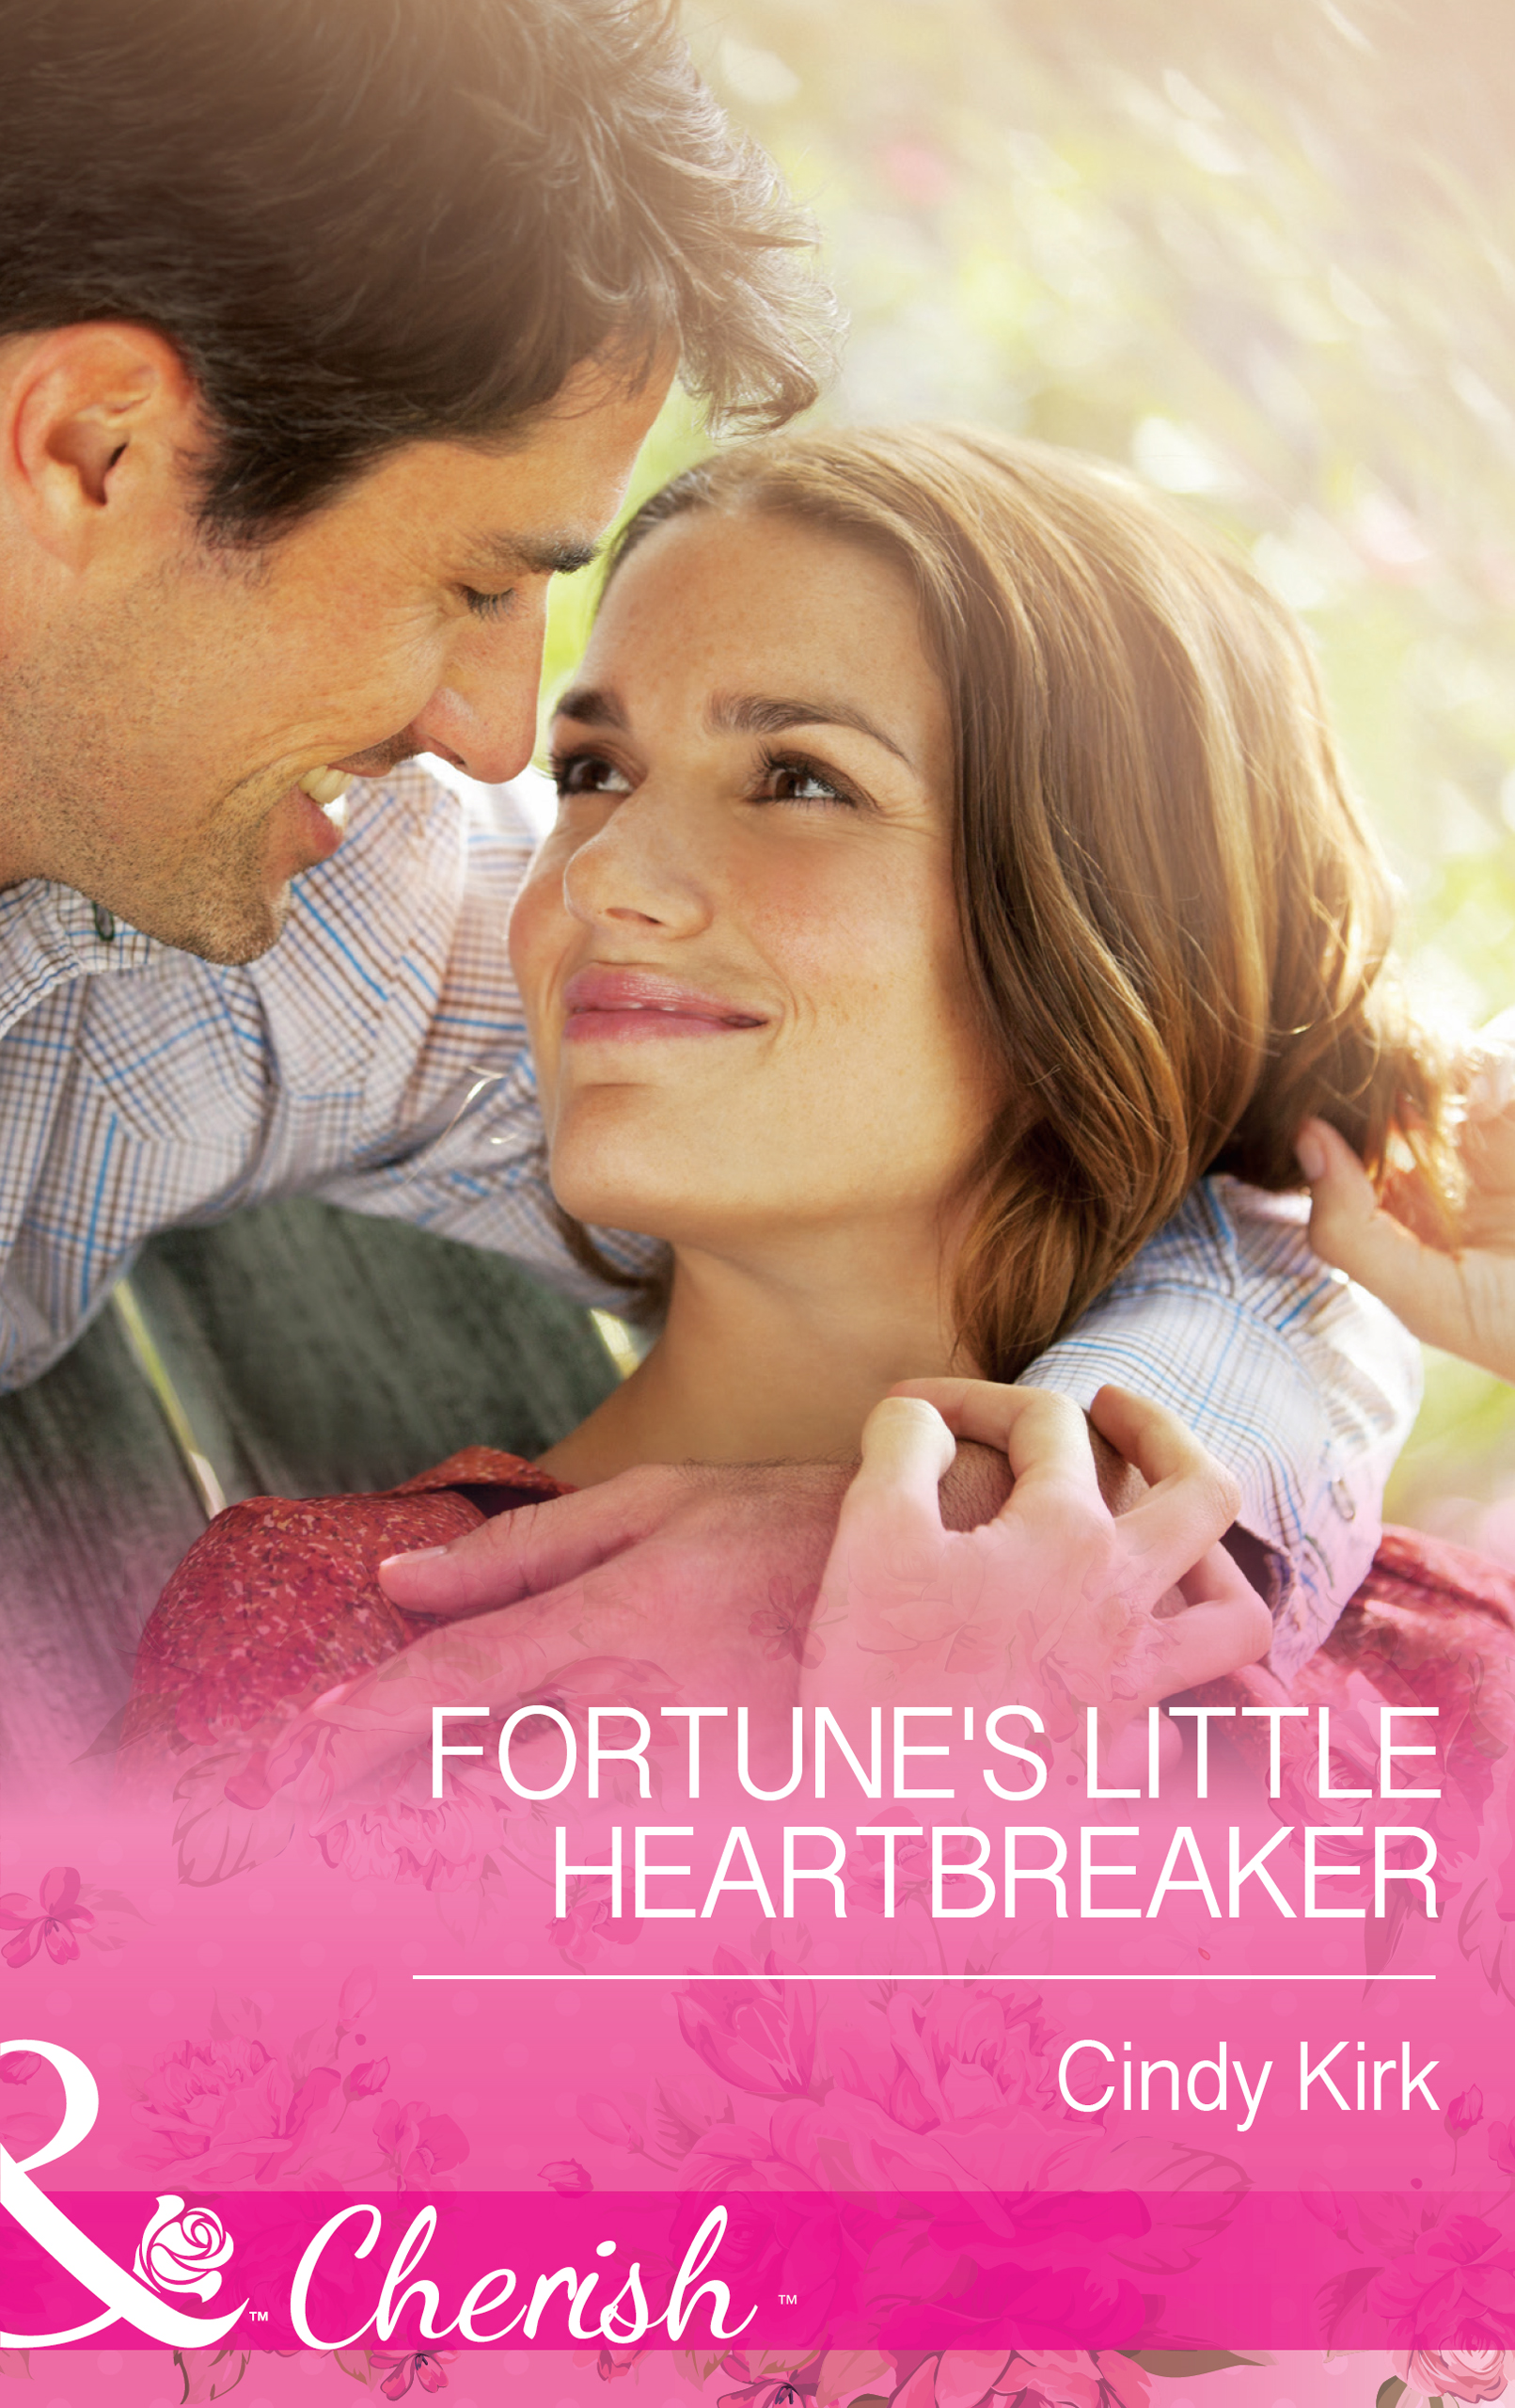 Fortune's Little Heartbreaker (Mills & Boon Cherish) (The Fortunes of Texas: Cowboy Country - Book 2)